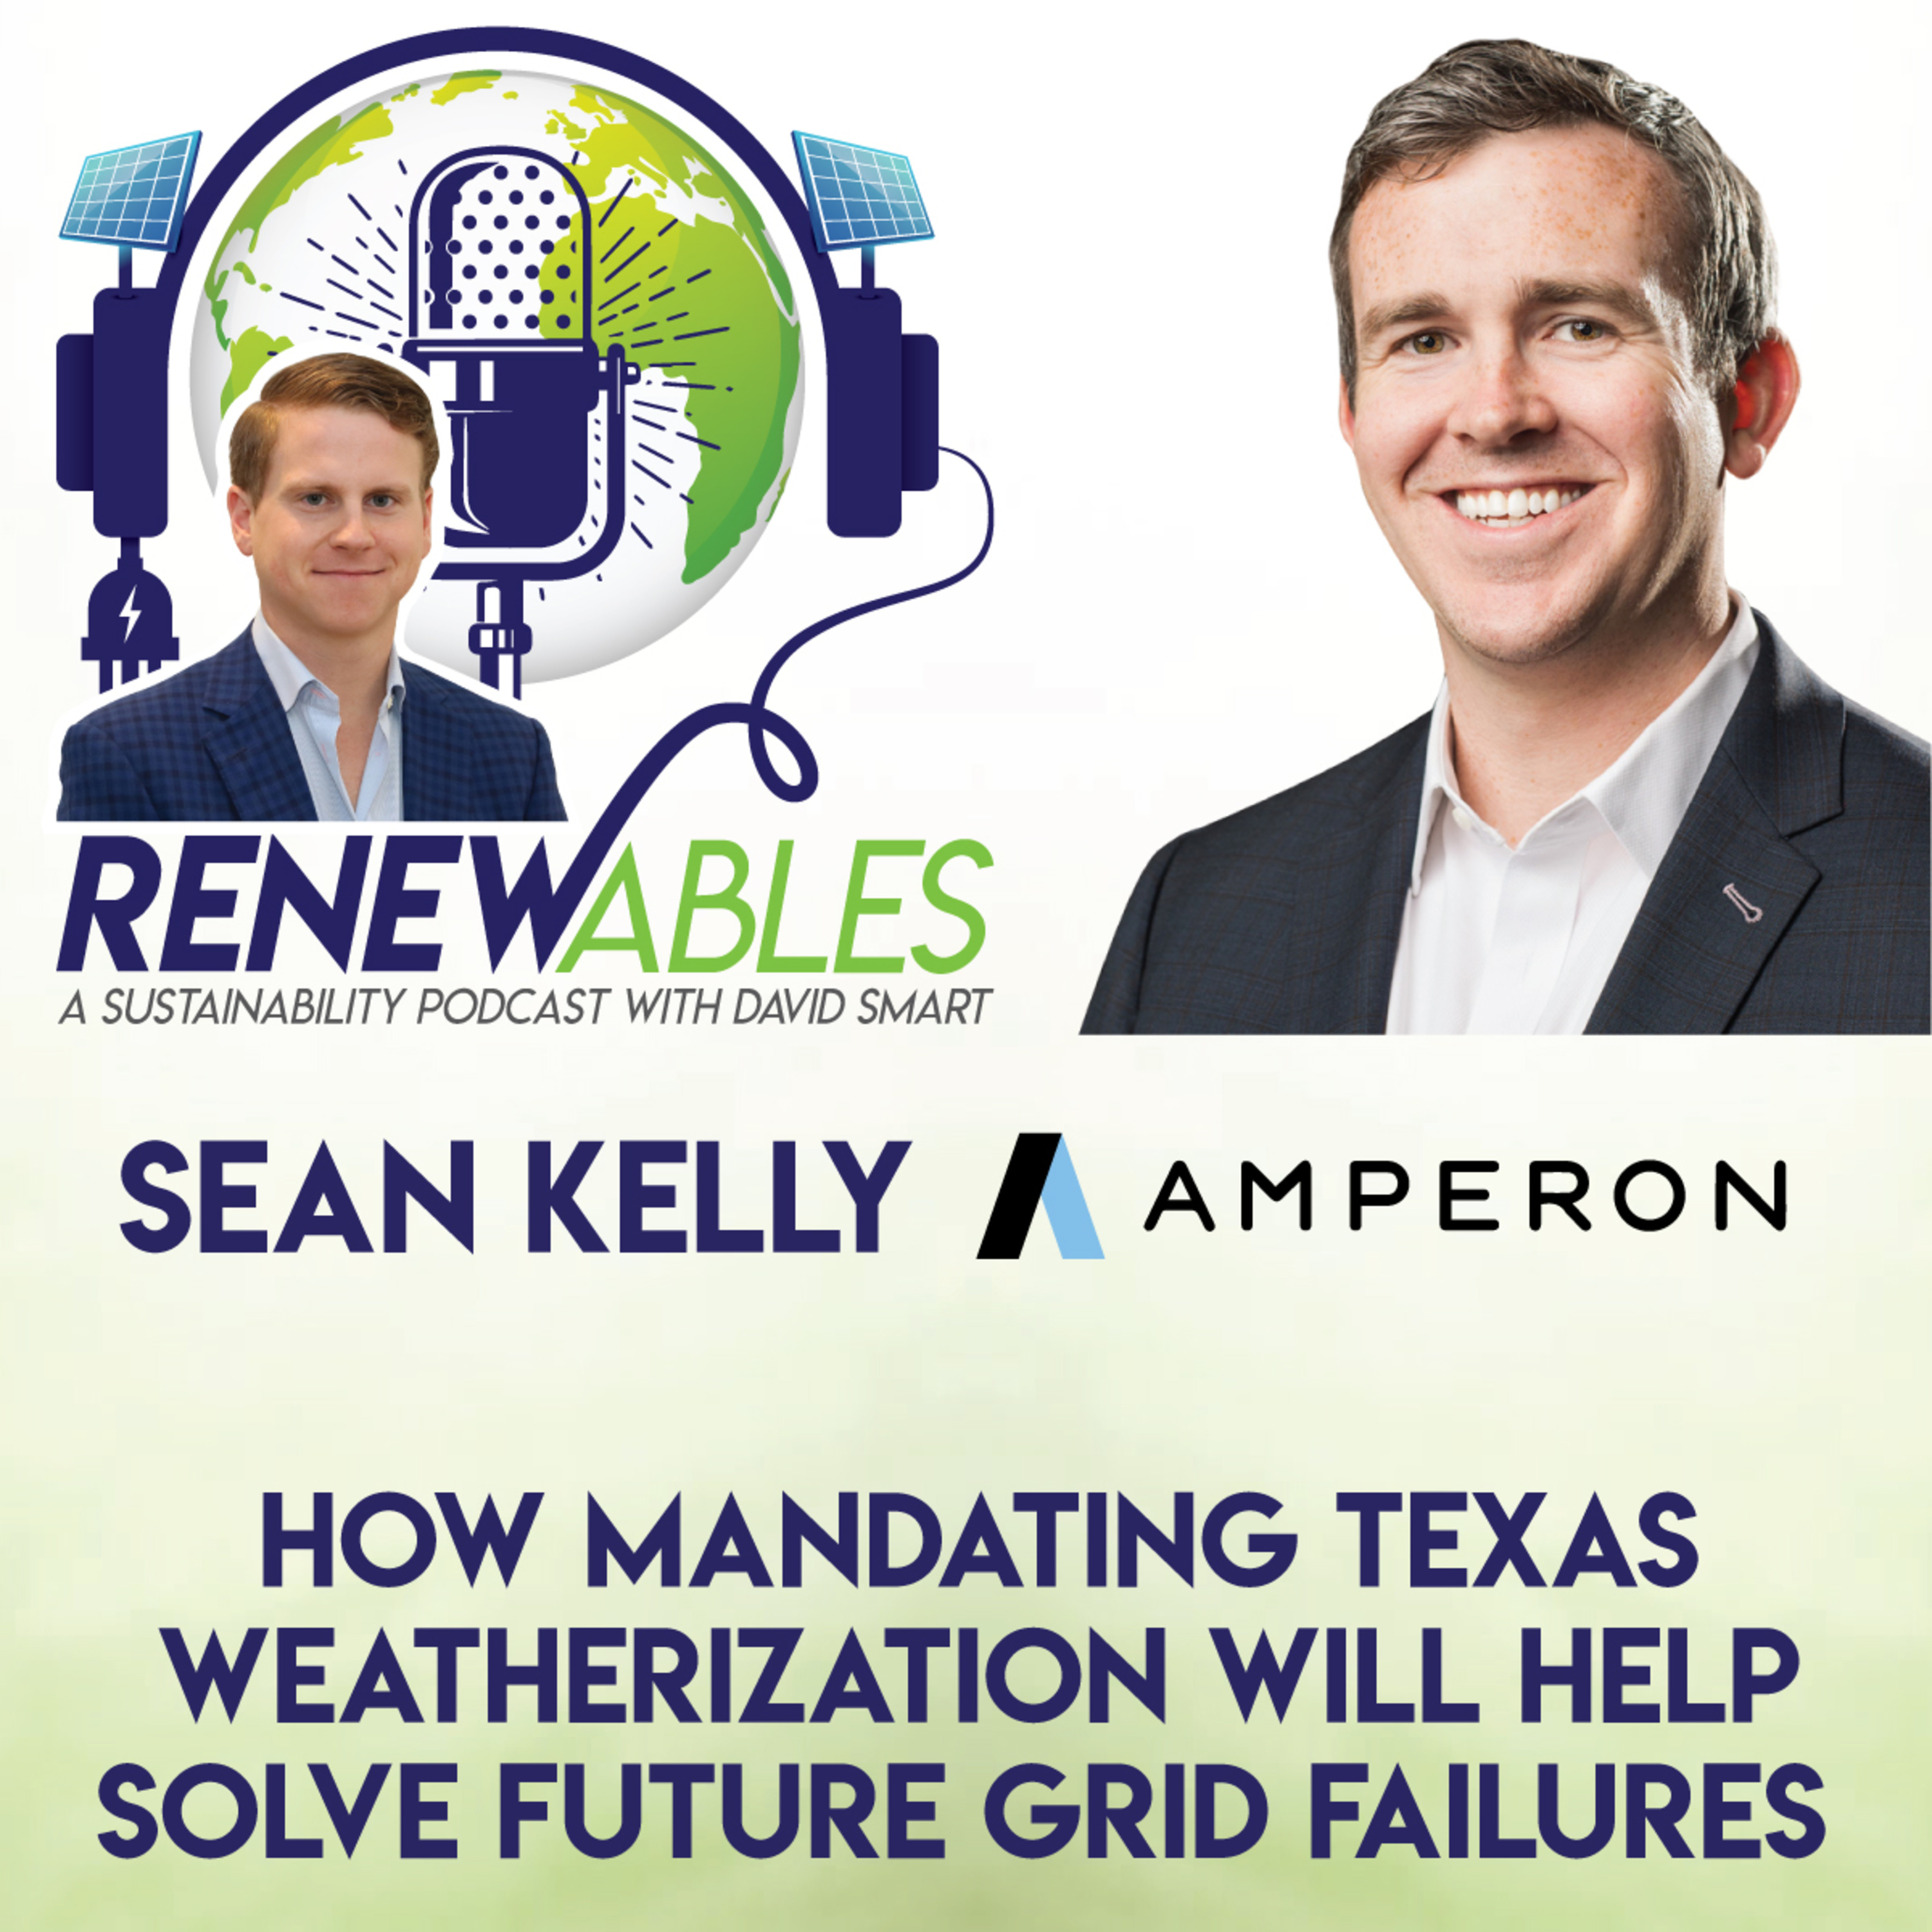 RENEWables Episode 21: How Mandating TX Weatherization Will Help Solve Future Grid Failures